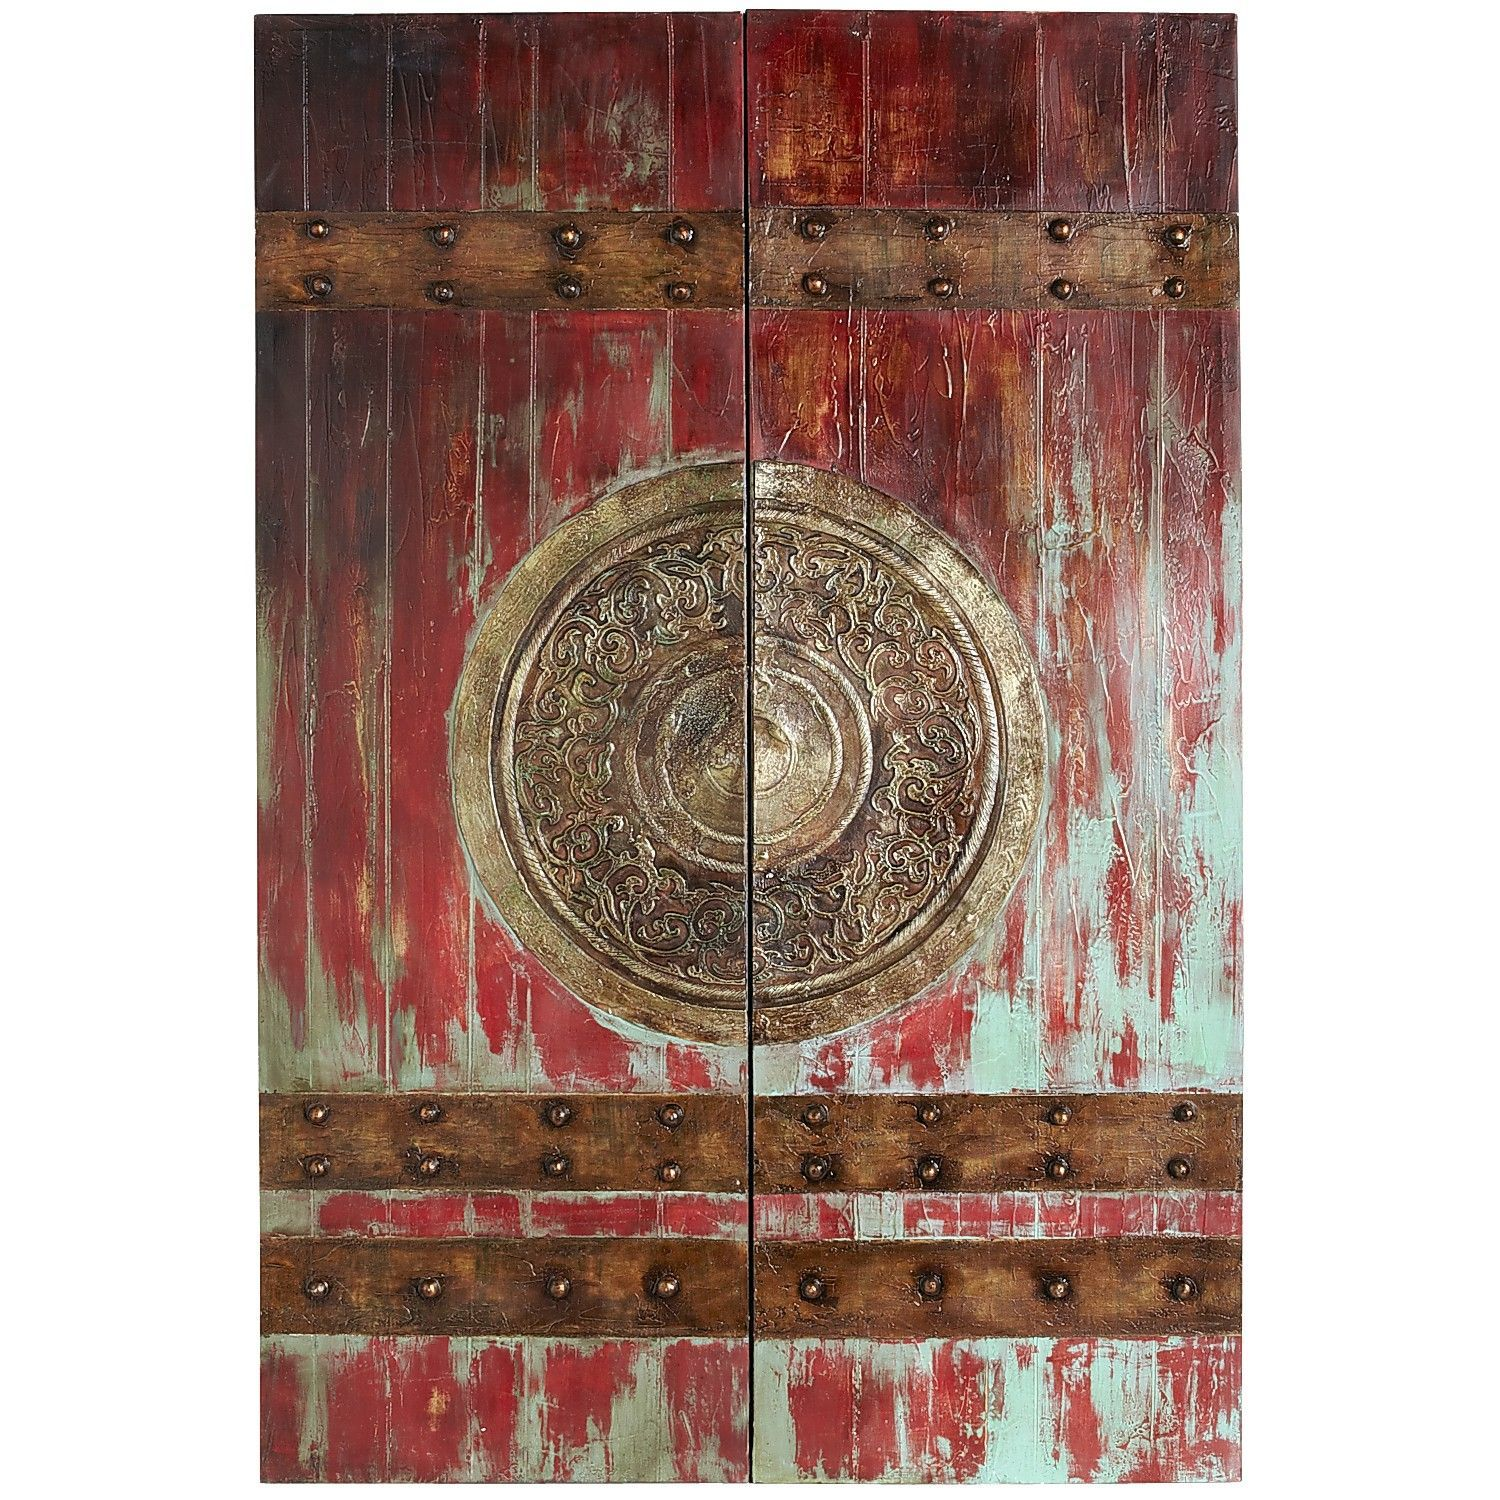 Home Decor Imports: Chinese Doors Art - Red